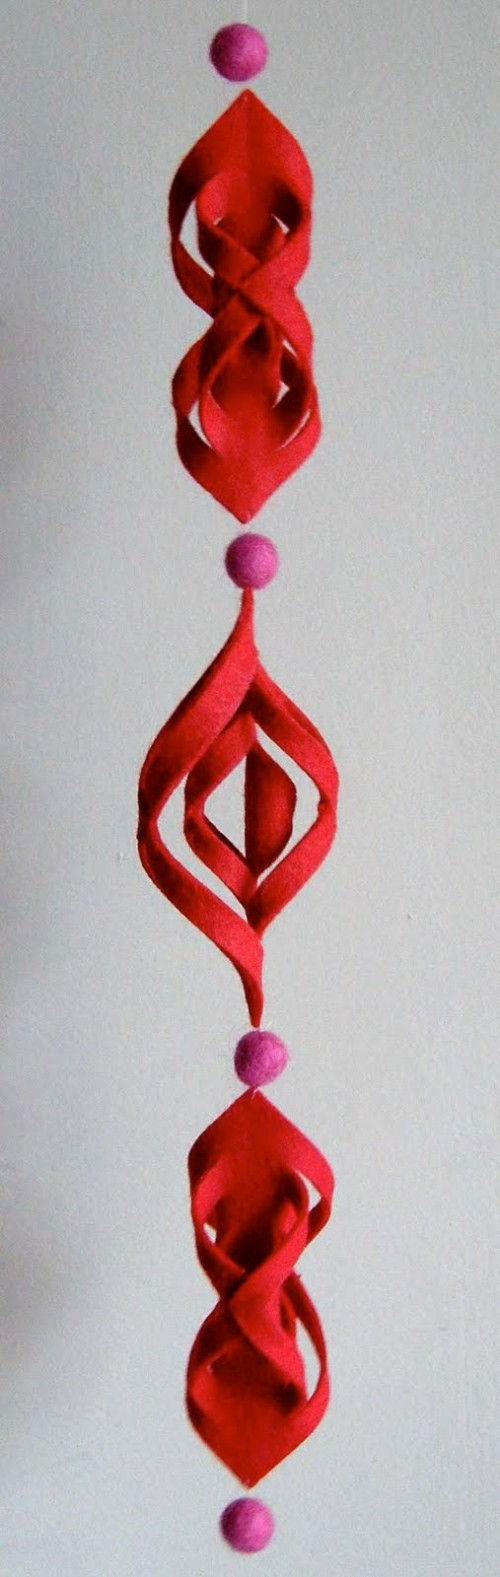 Modern Diy Felt Ornament